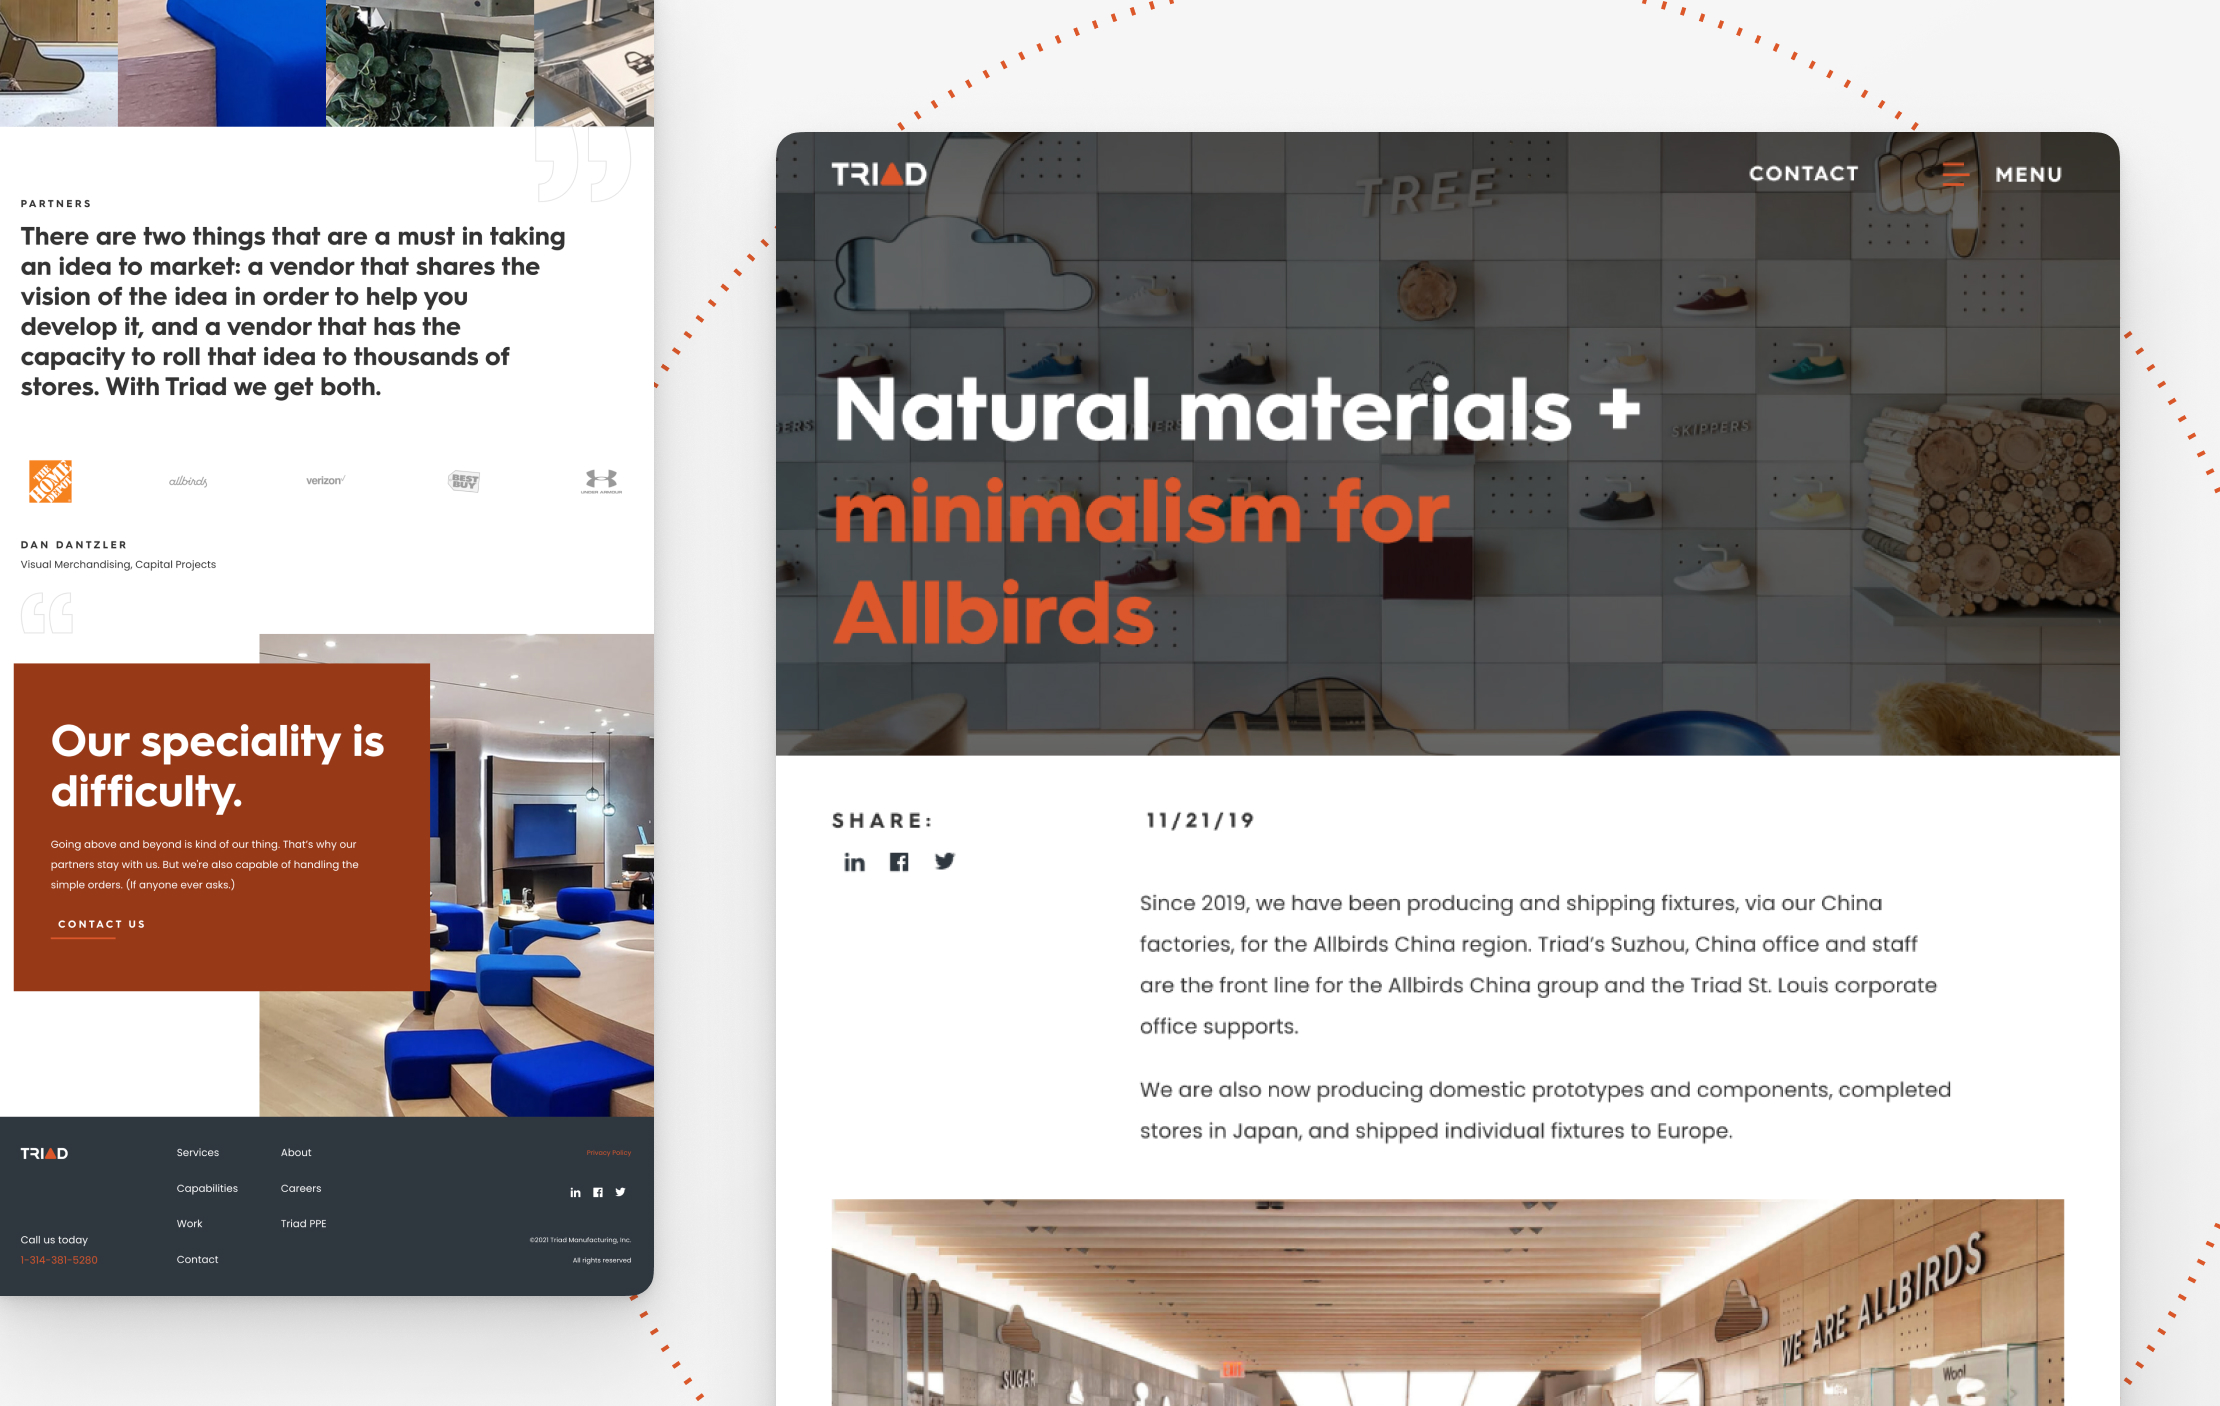 Additional miscellaneous screen captures of Triad Manufacturing's website interior pages.